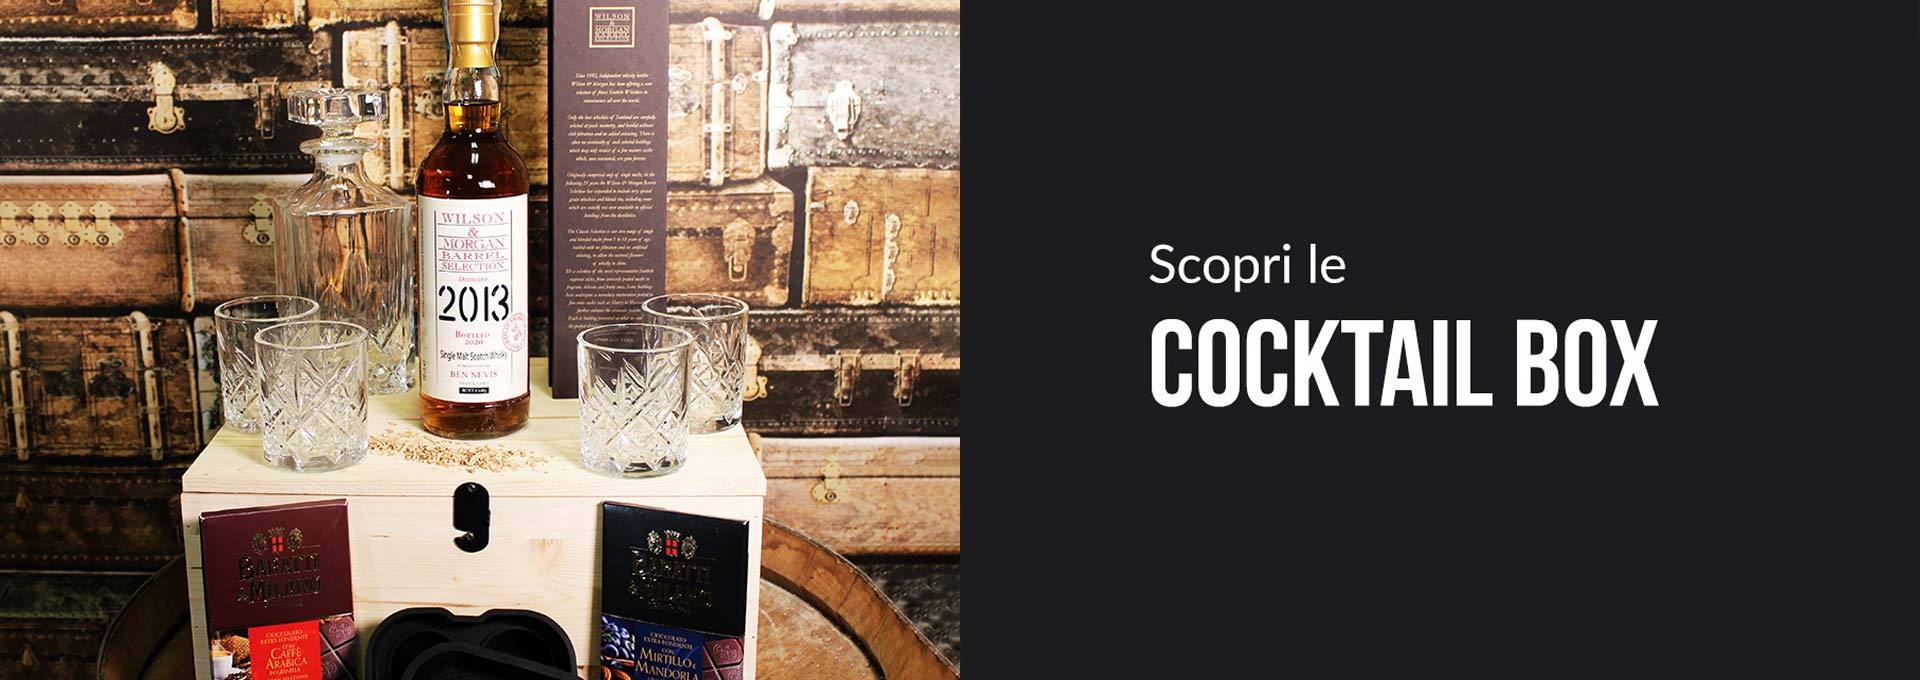 Scopri le Cocktail Box